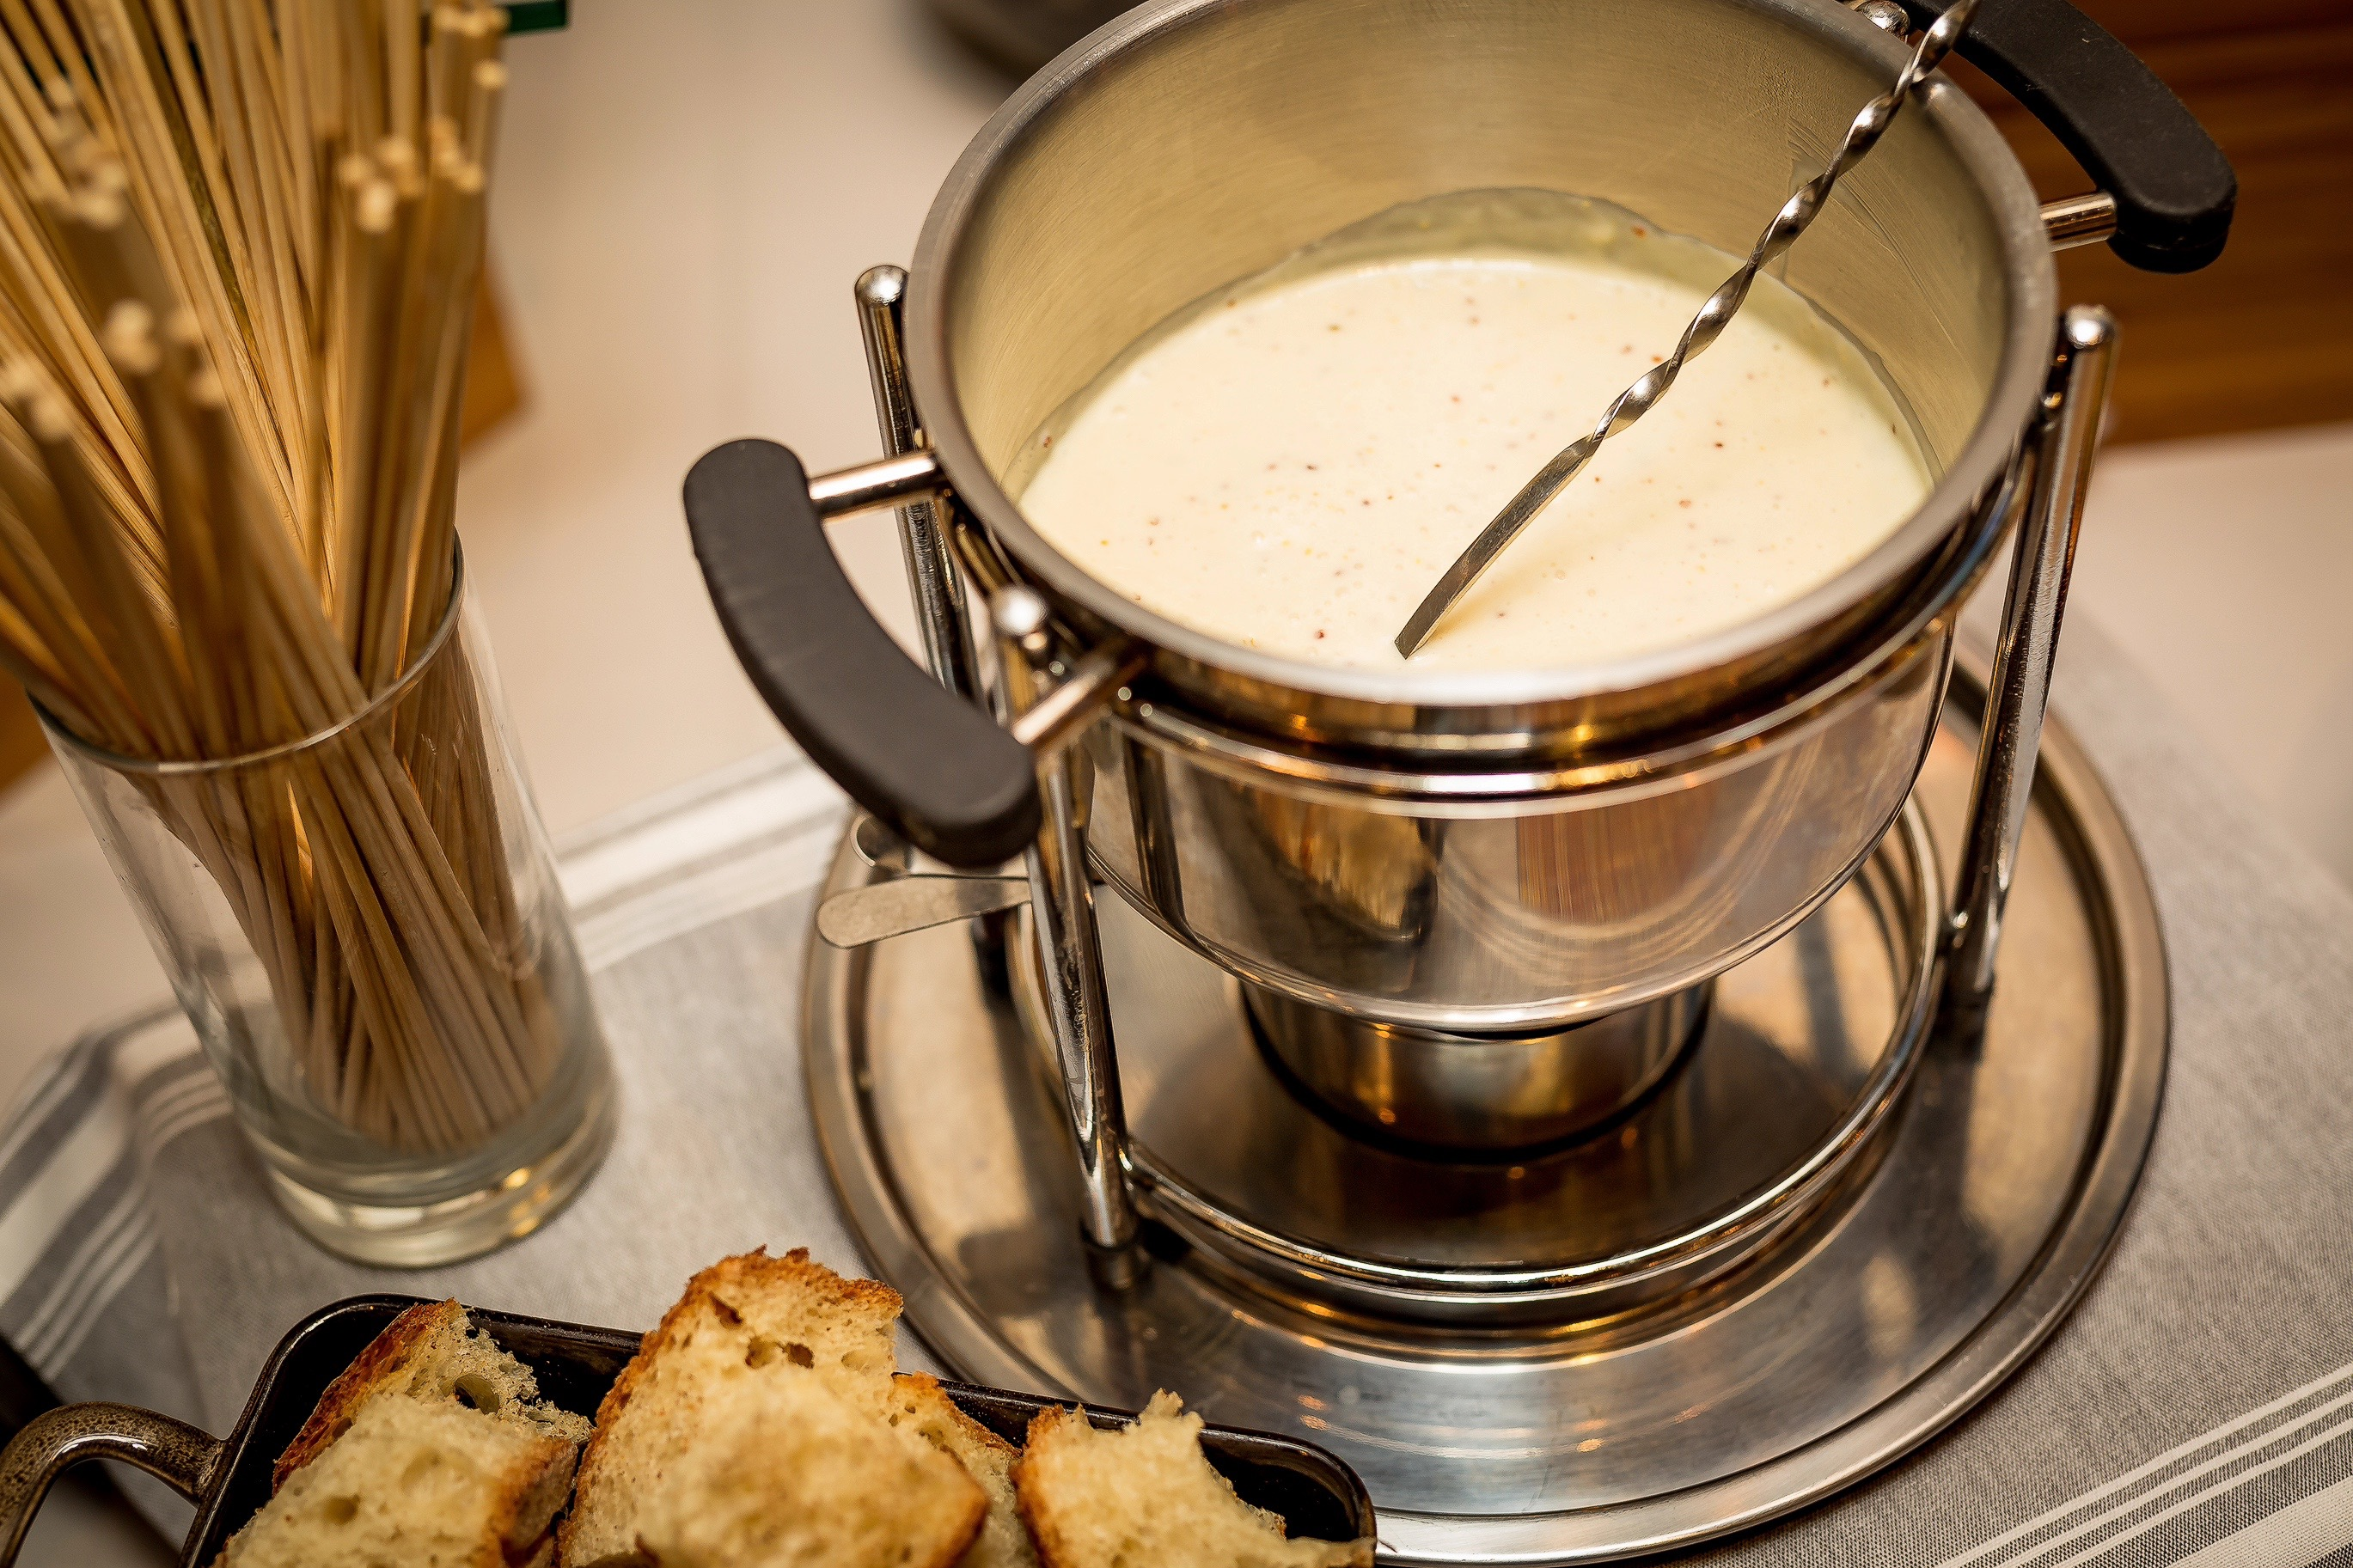 Believe it or not, Equinox Restaurant has even figured out how to make a plant-based fondue for its vegan brunch held each Sunday. The latest iteration is a Riesling and Dijon fondue made with sautéed shallots, wine, whole-grain mustard, puréed artichokes, roasted red peppers and melted cashew cheese. It's thoughtfully served with gluten-free sourdough croutons, making it even more friendly for those with dietary restrictions. (Image: Courtesy Equinox Restaurant){ }